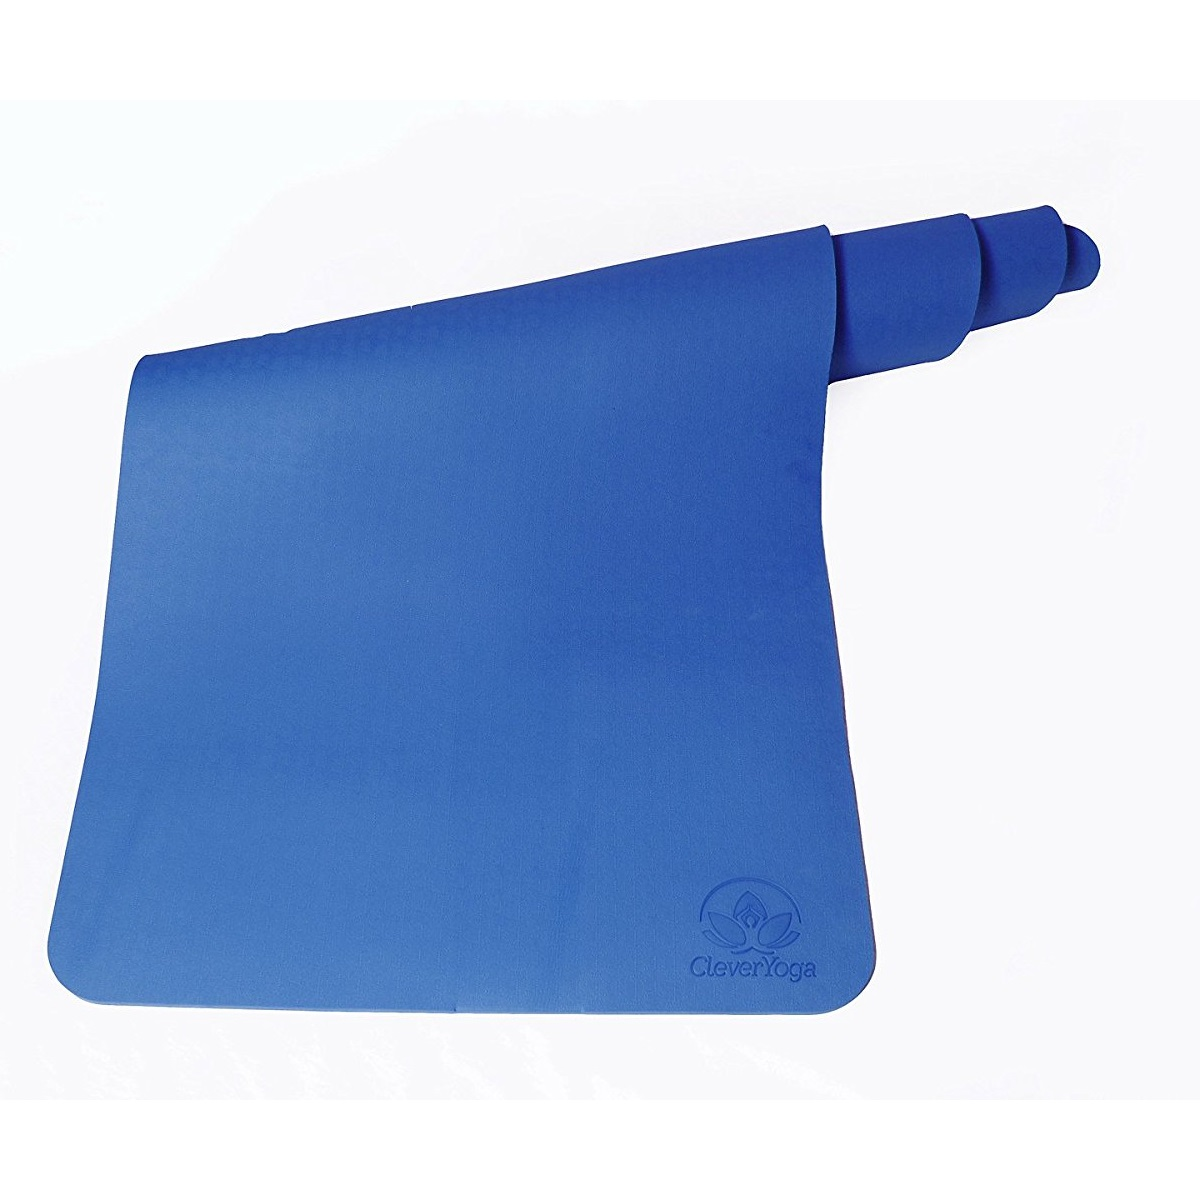 "clever yoga premium bettergrip tpe 1/4"" thick blue yoga mat"